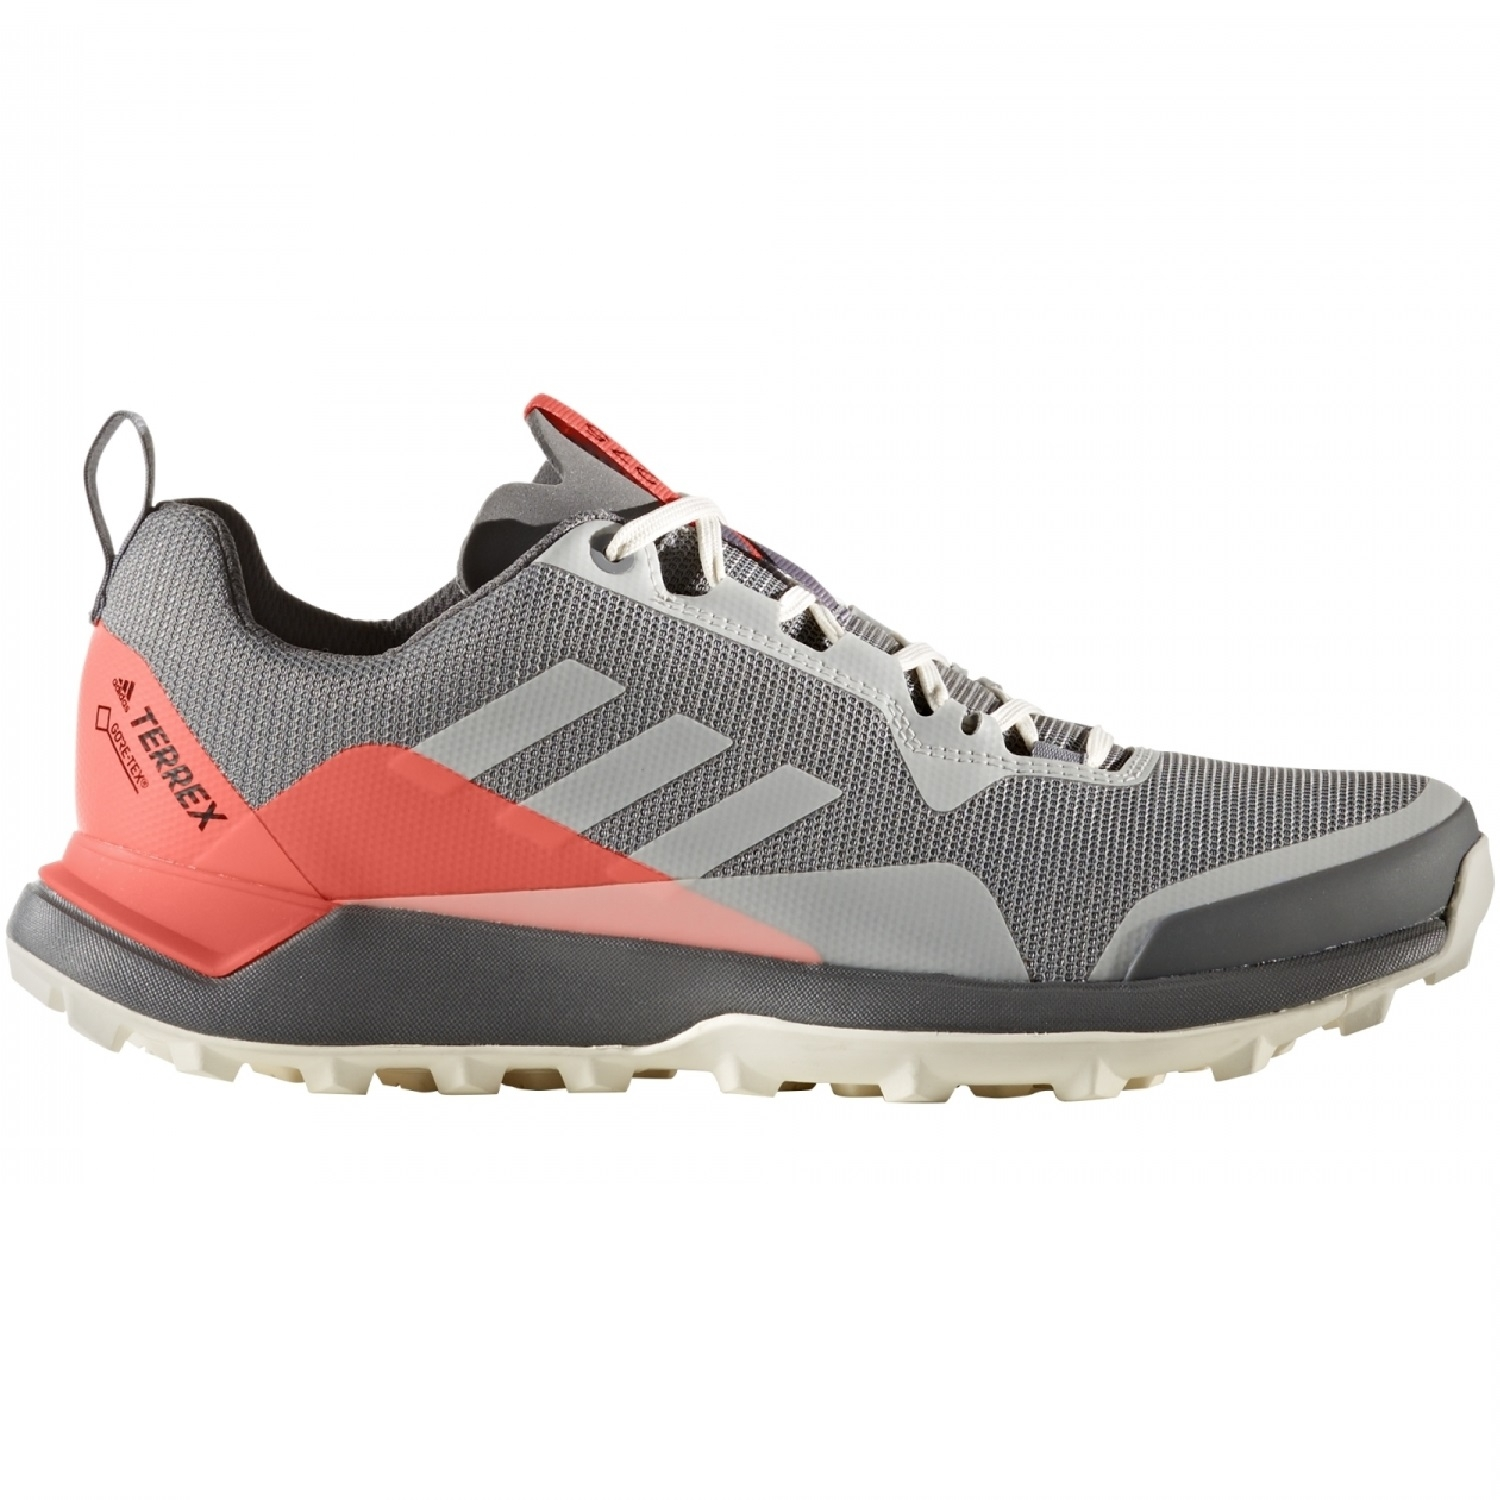 reputable site 7a181 66d4f adidas terrex cmtk gtx running trail by2772 1578.jpg